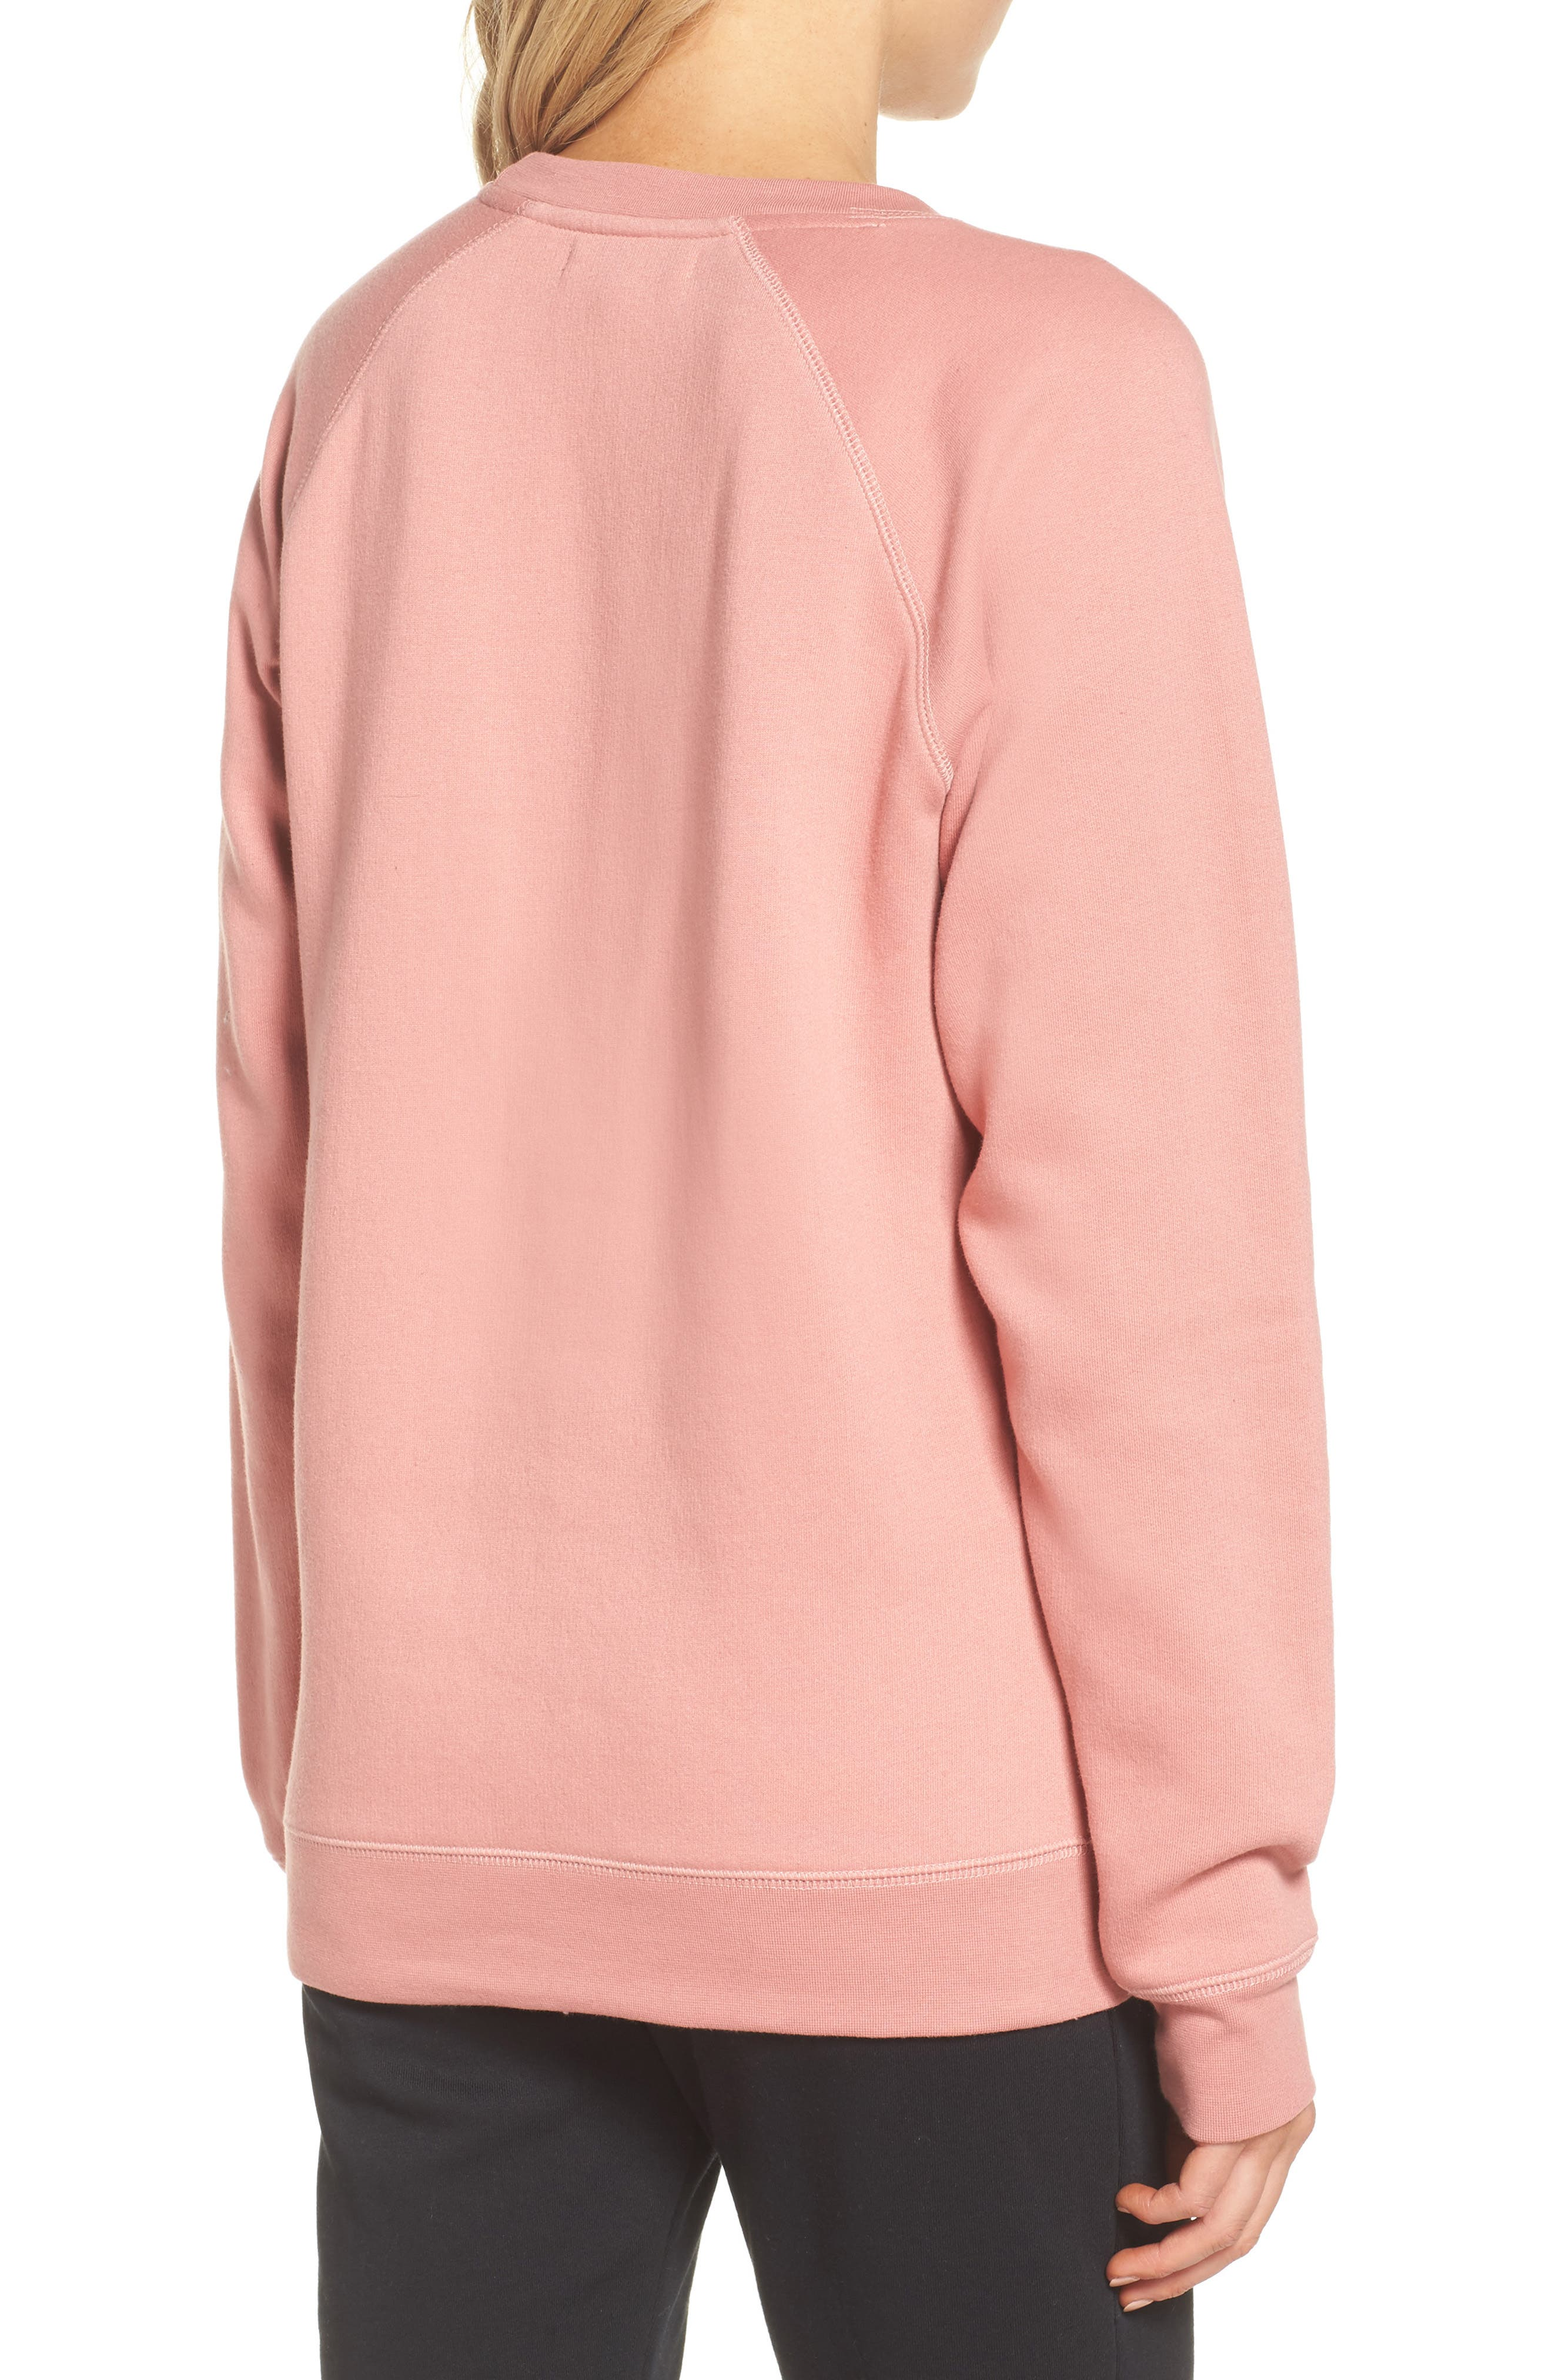 Blonde Crewneck Sweatshirt,                             Alternate thumbnail 2, color,                             Dusty Rose